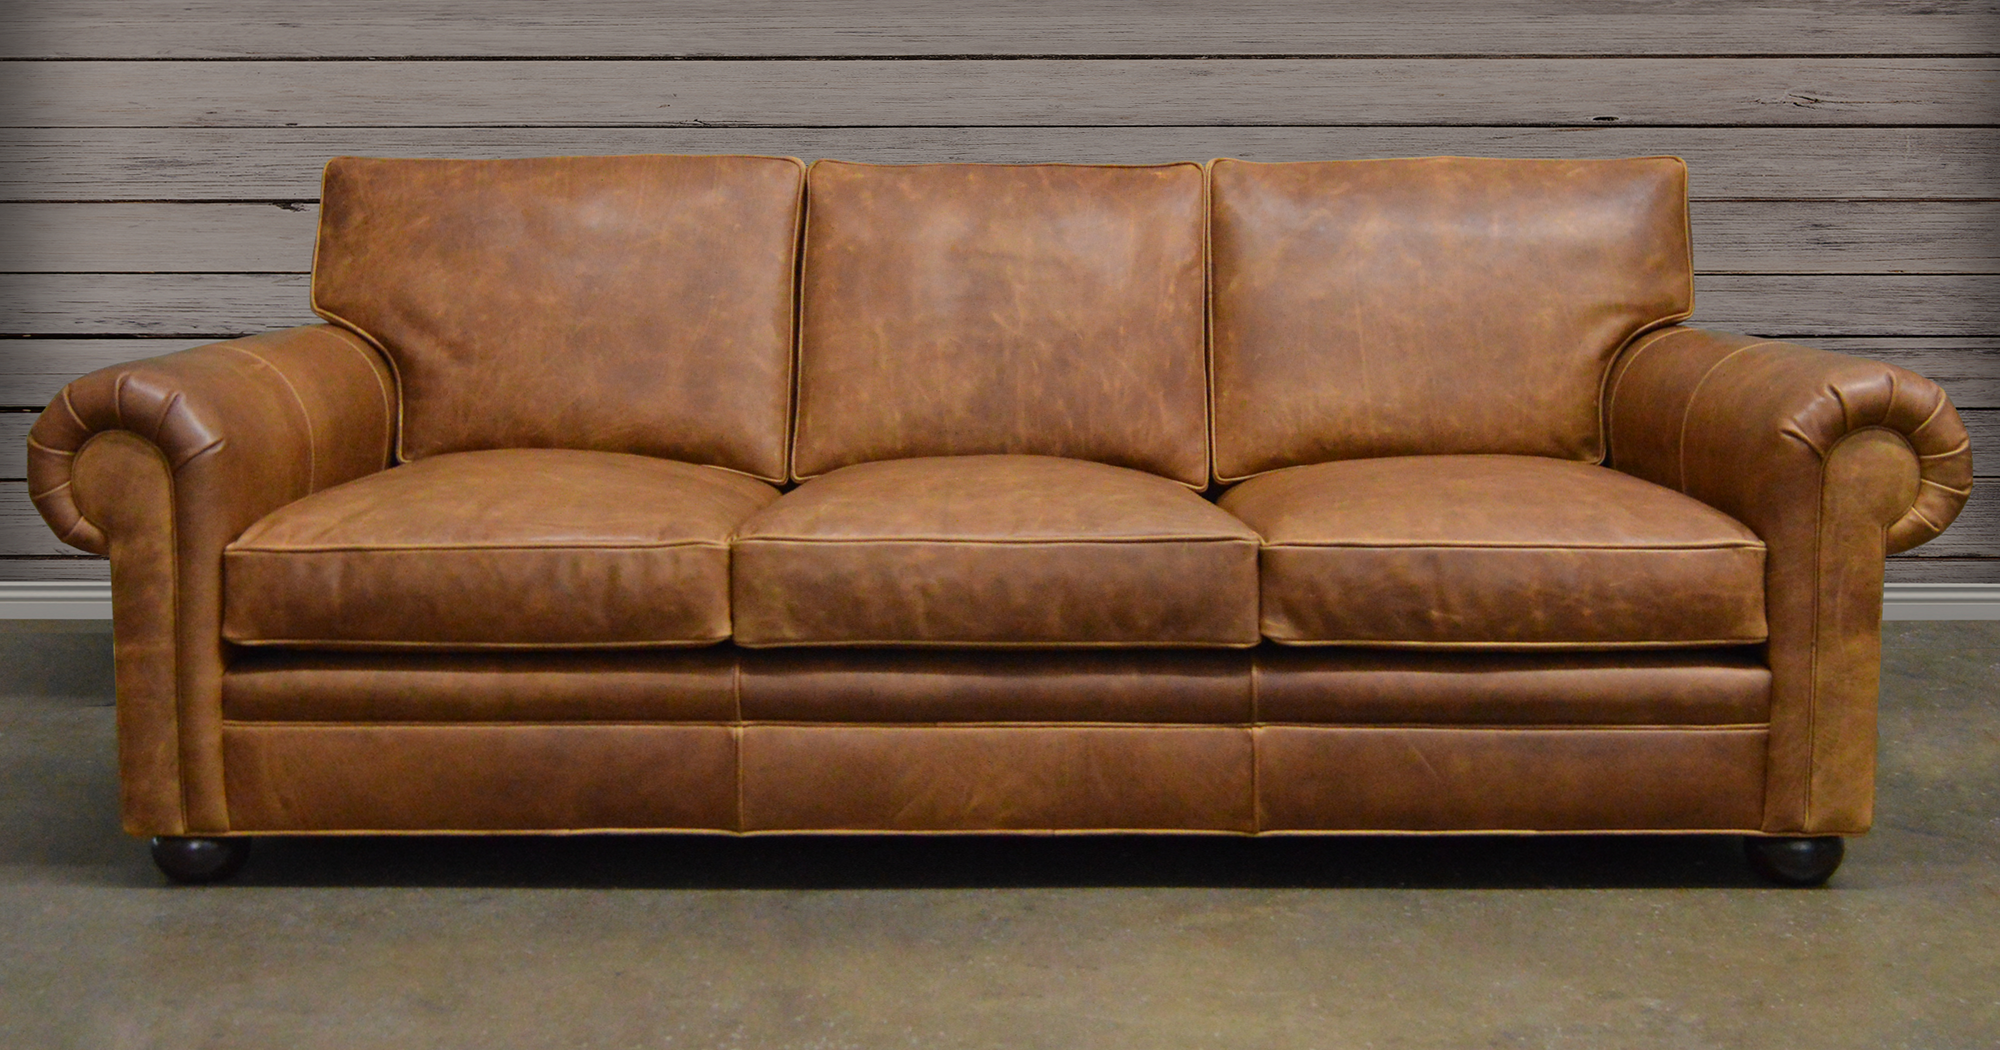 Langston Leather Sofa in Italian Brentwood Tan Leather